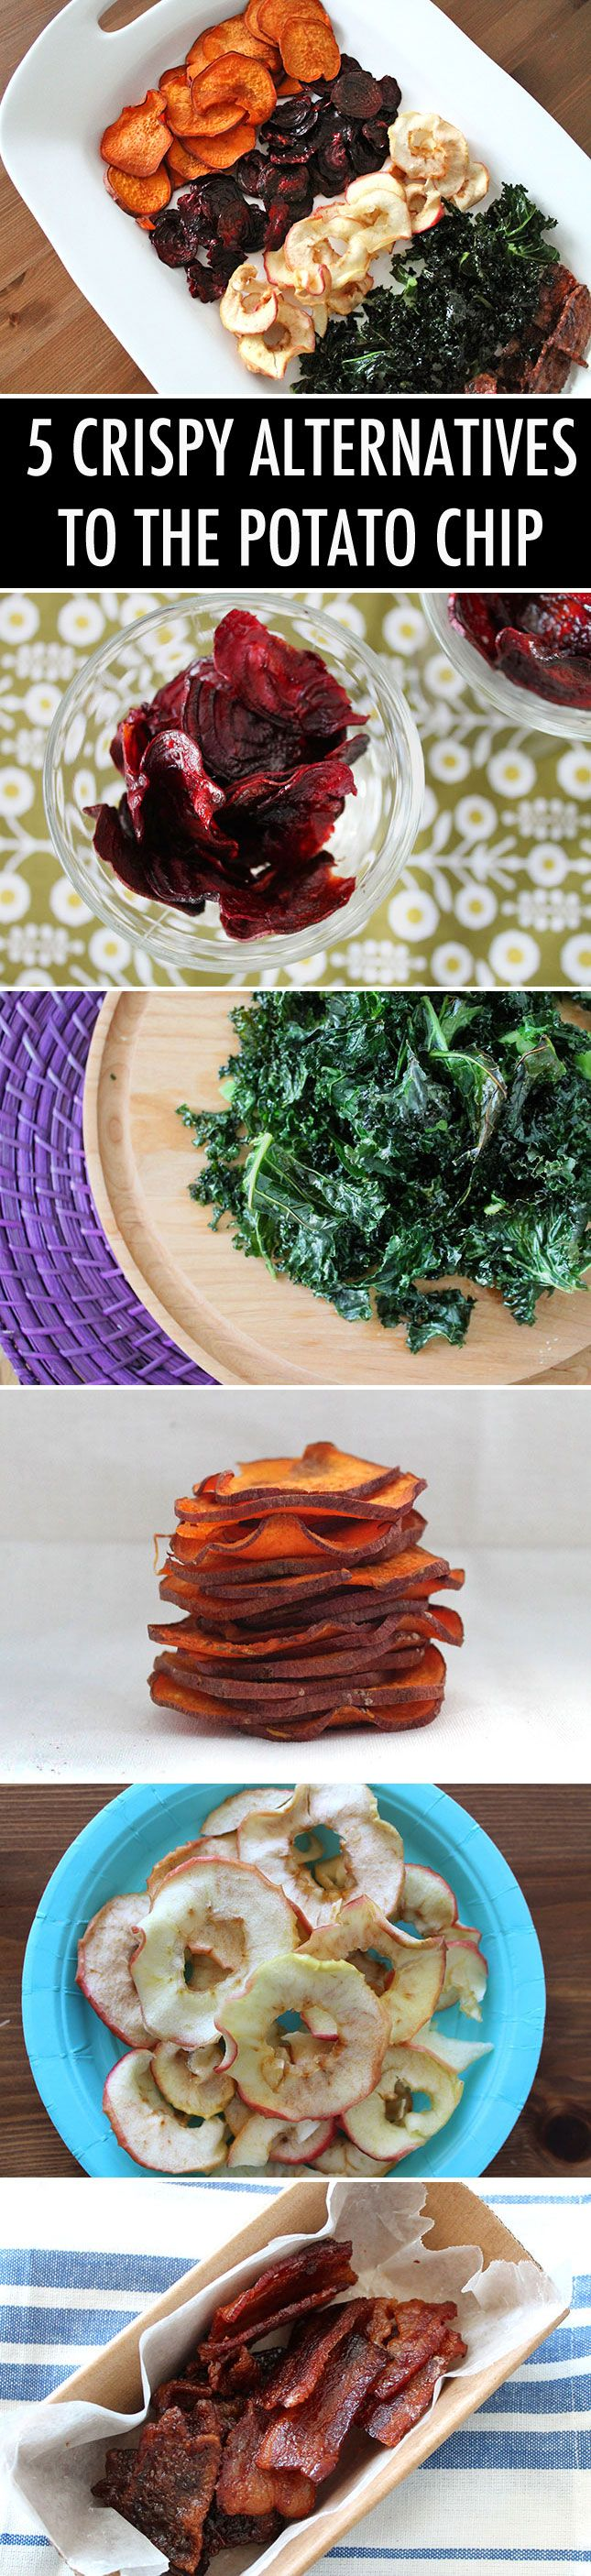 Who needs potato chips when you have kale, sweet potato, beet, apple, and bacon chips?! You can use the chip maker. https://www.pamperedchef.com/pws/brittliz